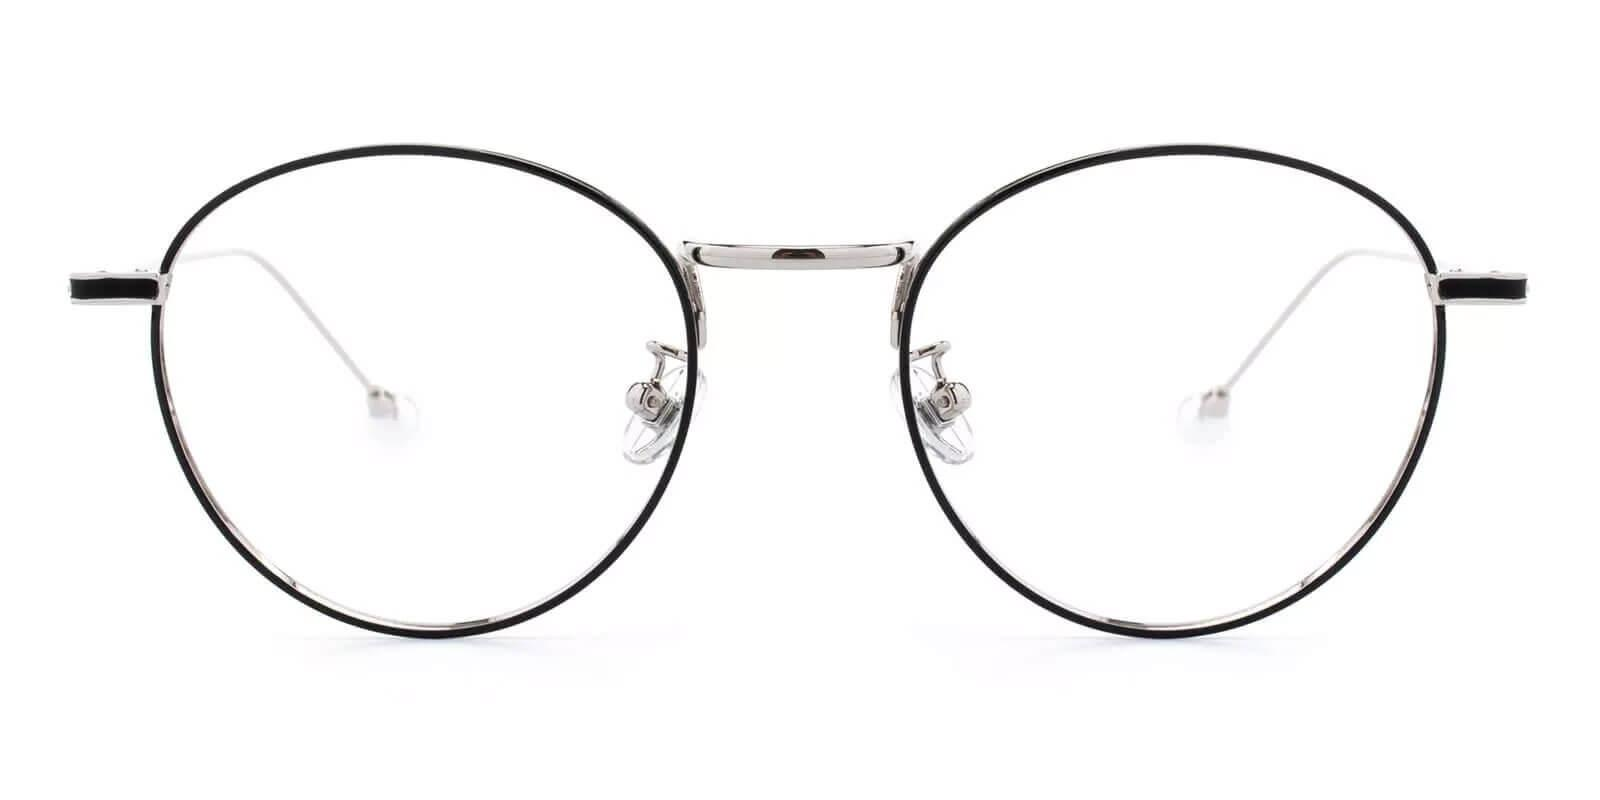 Pearl Silver Metal Eyeglasses , NosePads Frames from ABBE Glasses